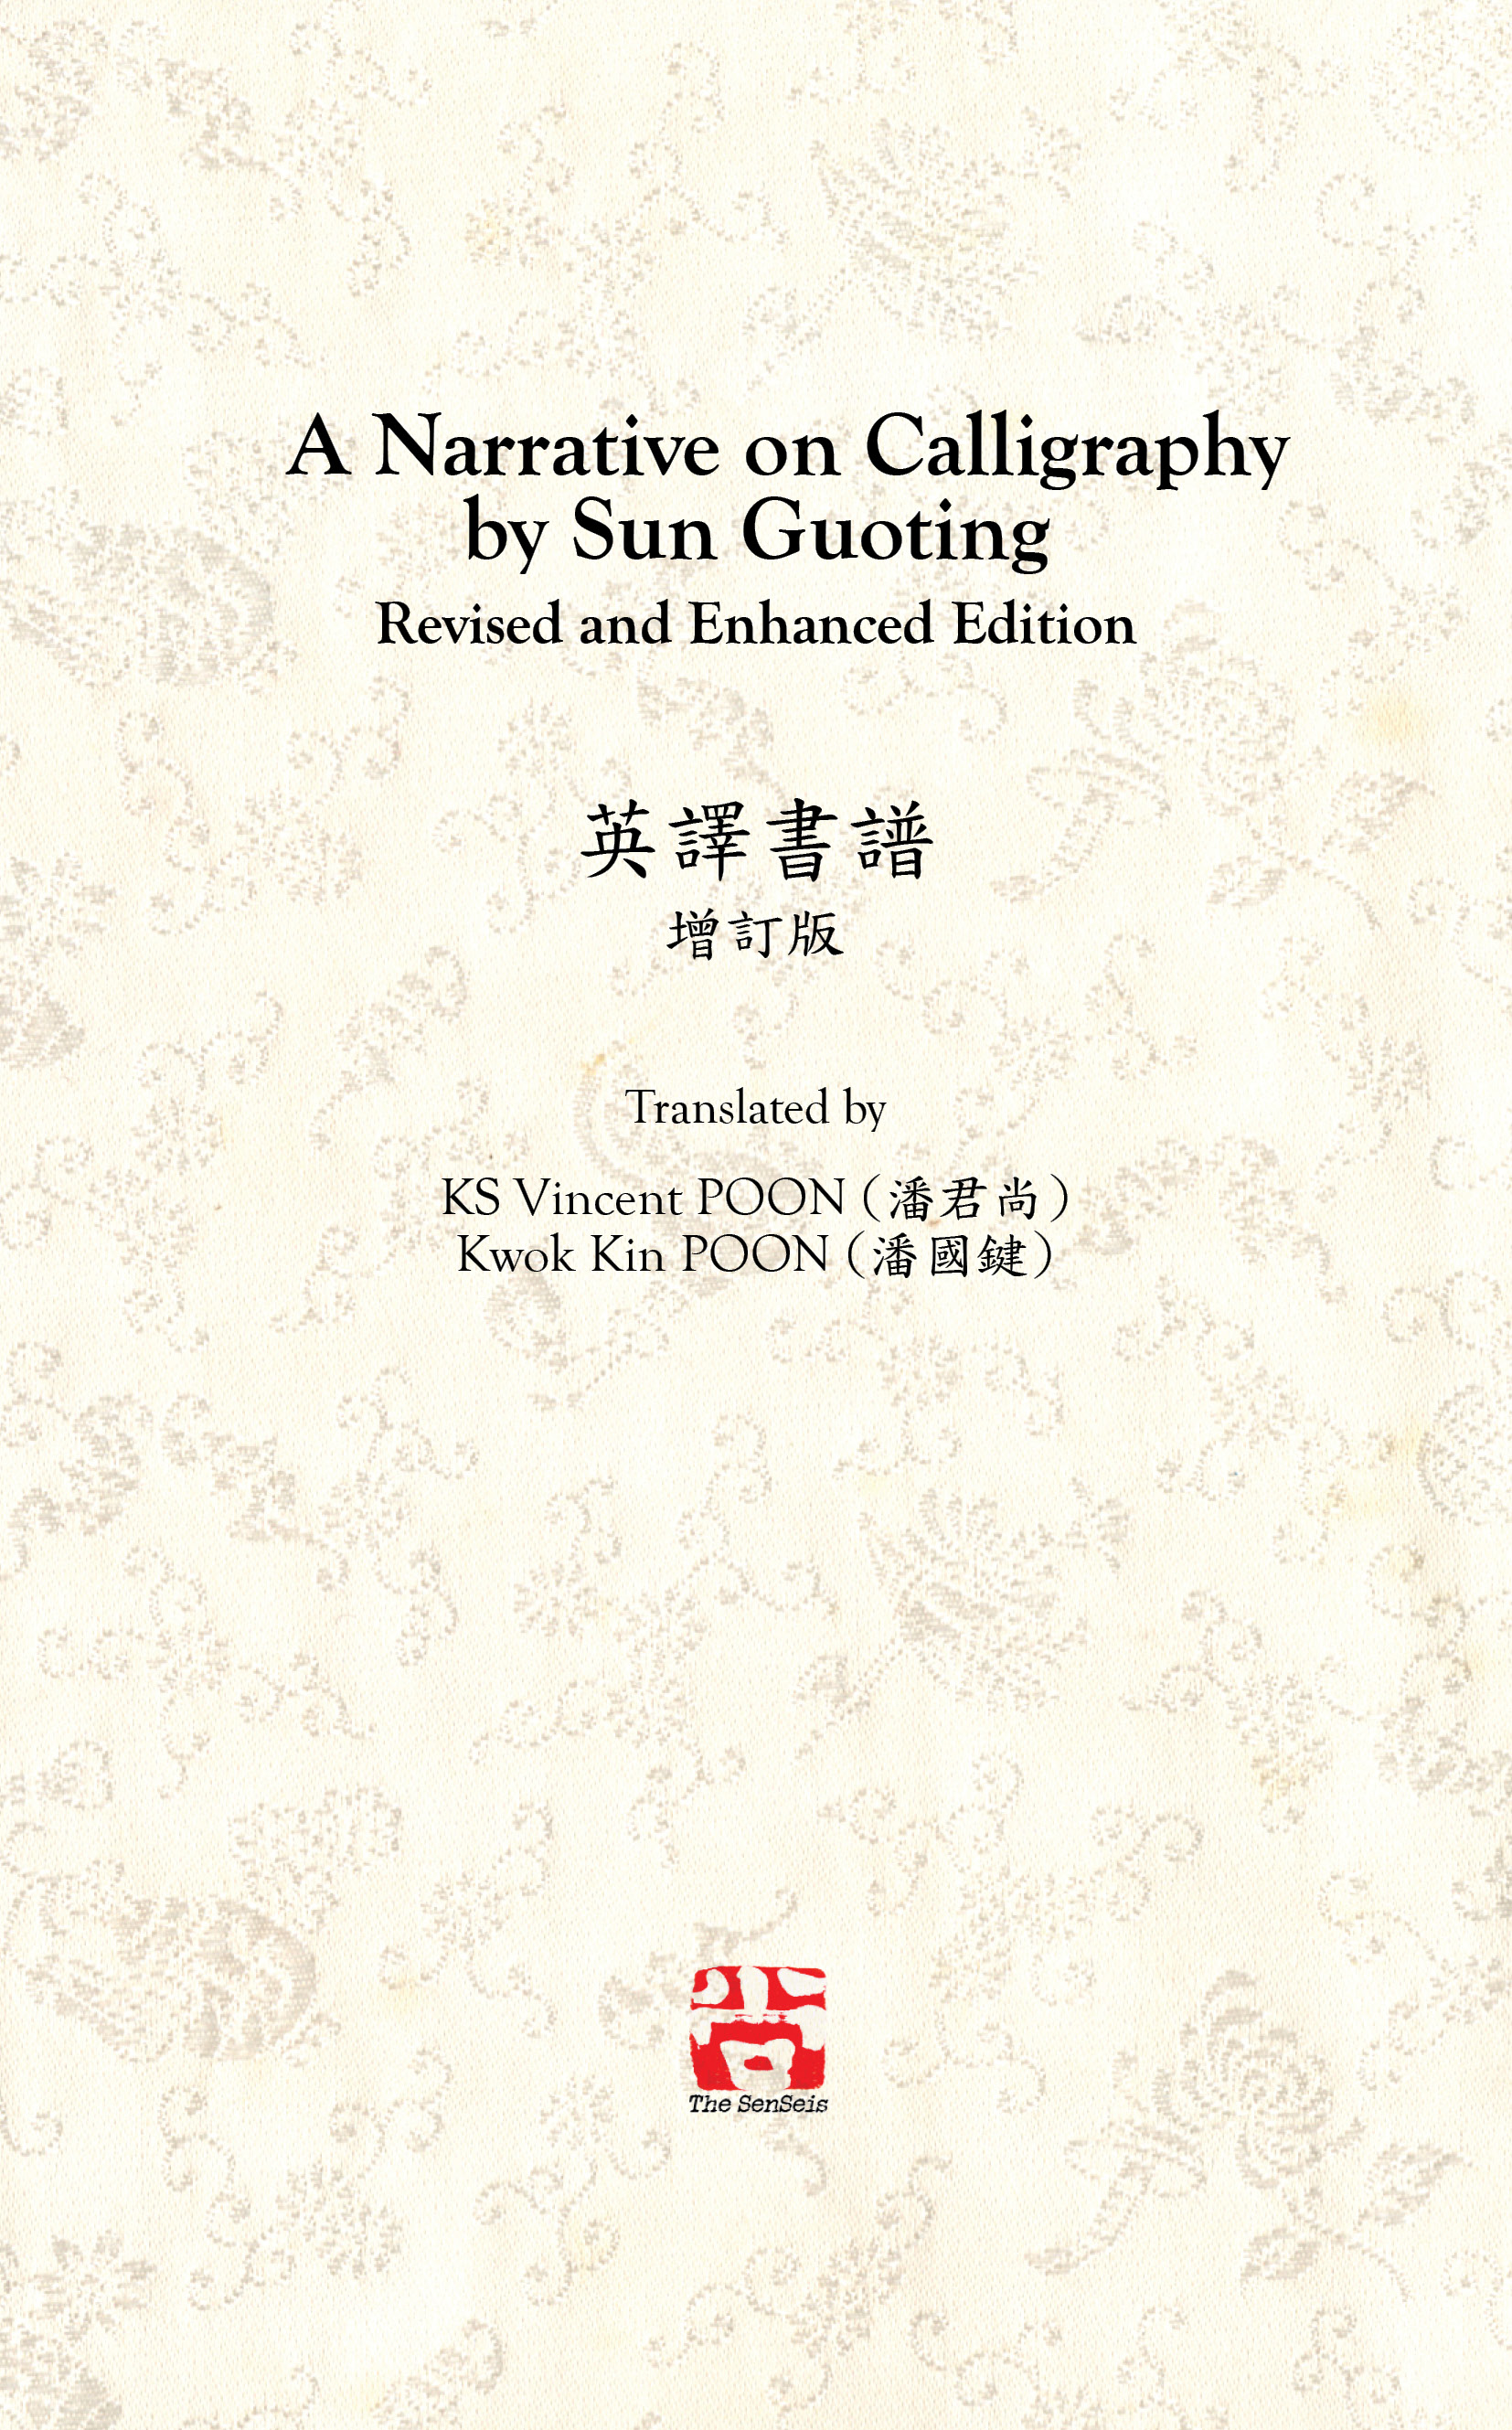 A Narrative on Calligraphy Treatise on Calligraphy Manual of Calligraphy 孫過庭 書譜 翻譯 英譯 Translation Pt. IX - Vincent's Calligraphy